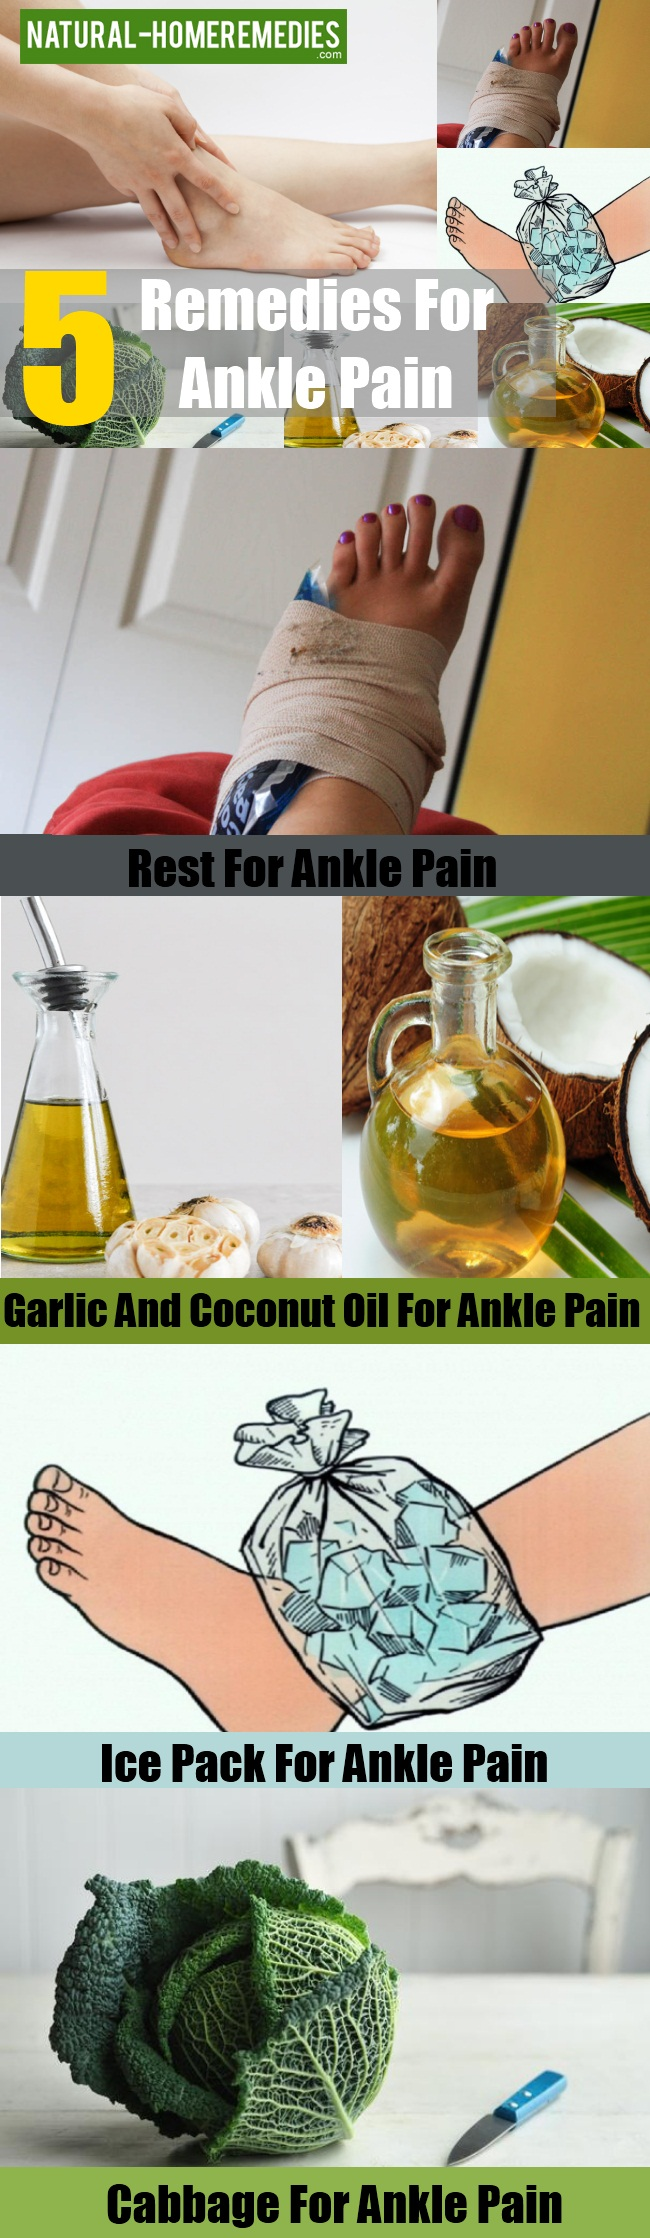 Remedies For Ankle Pain